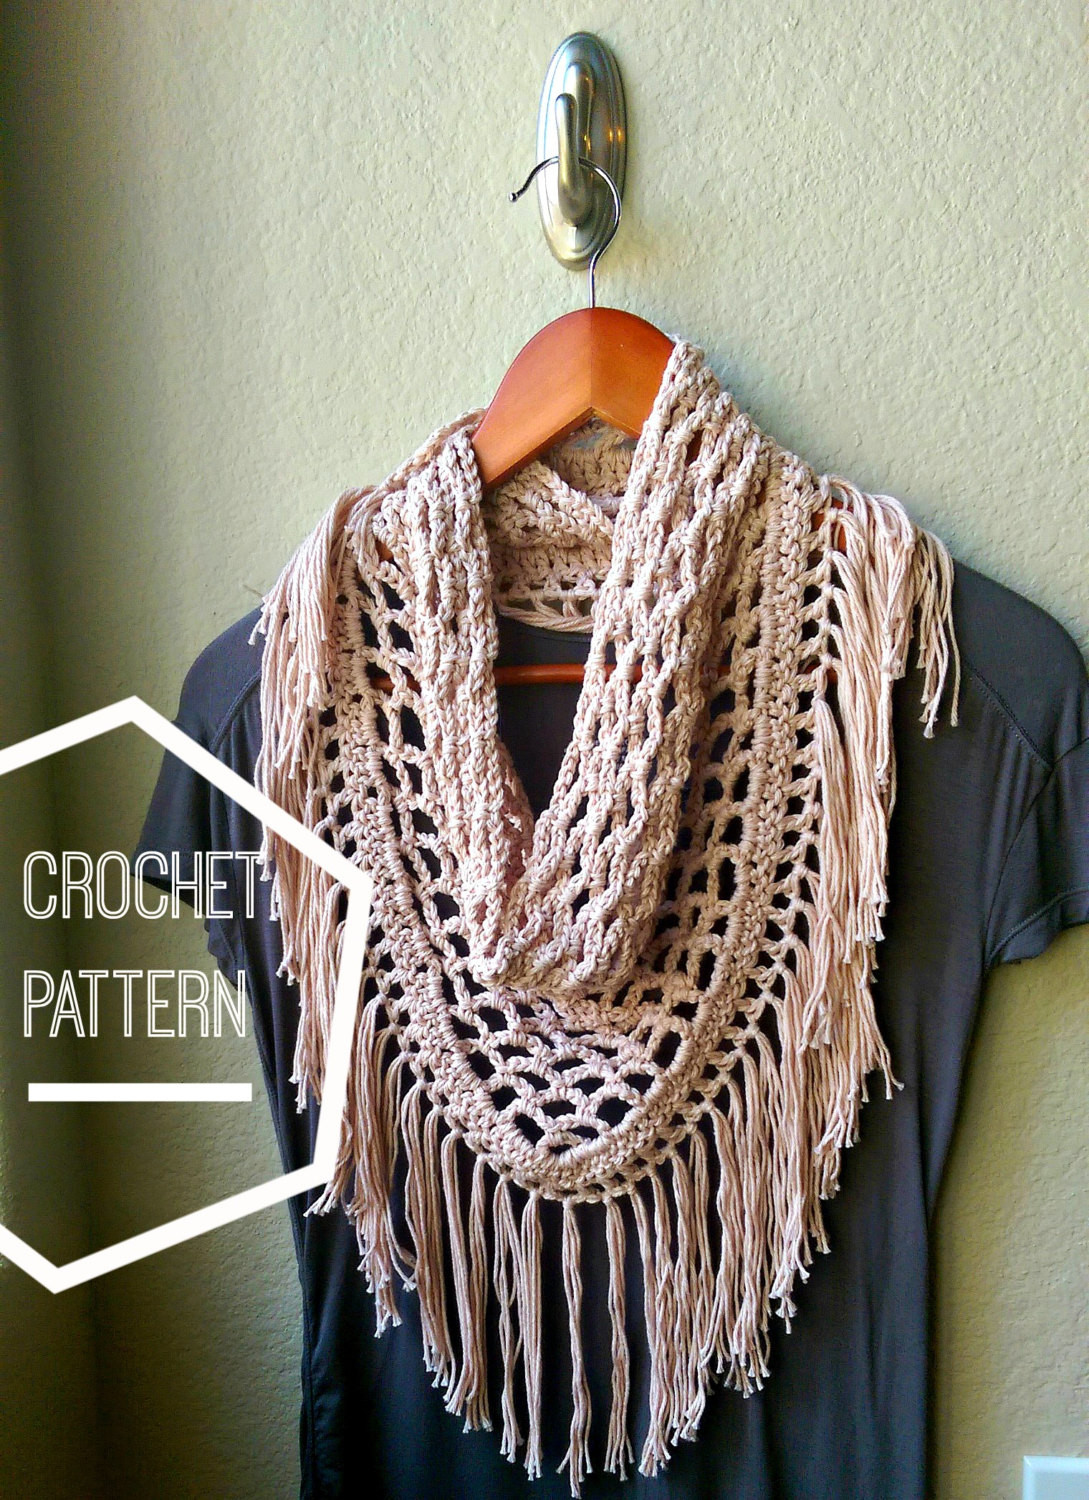 Crochet Scarf Patterns Awesome Crochet Scarf Pattern Triangle Scarf Pattern Fringe Scarf Of Charming 49 Models Crochet Scarf Patterns